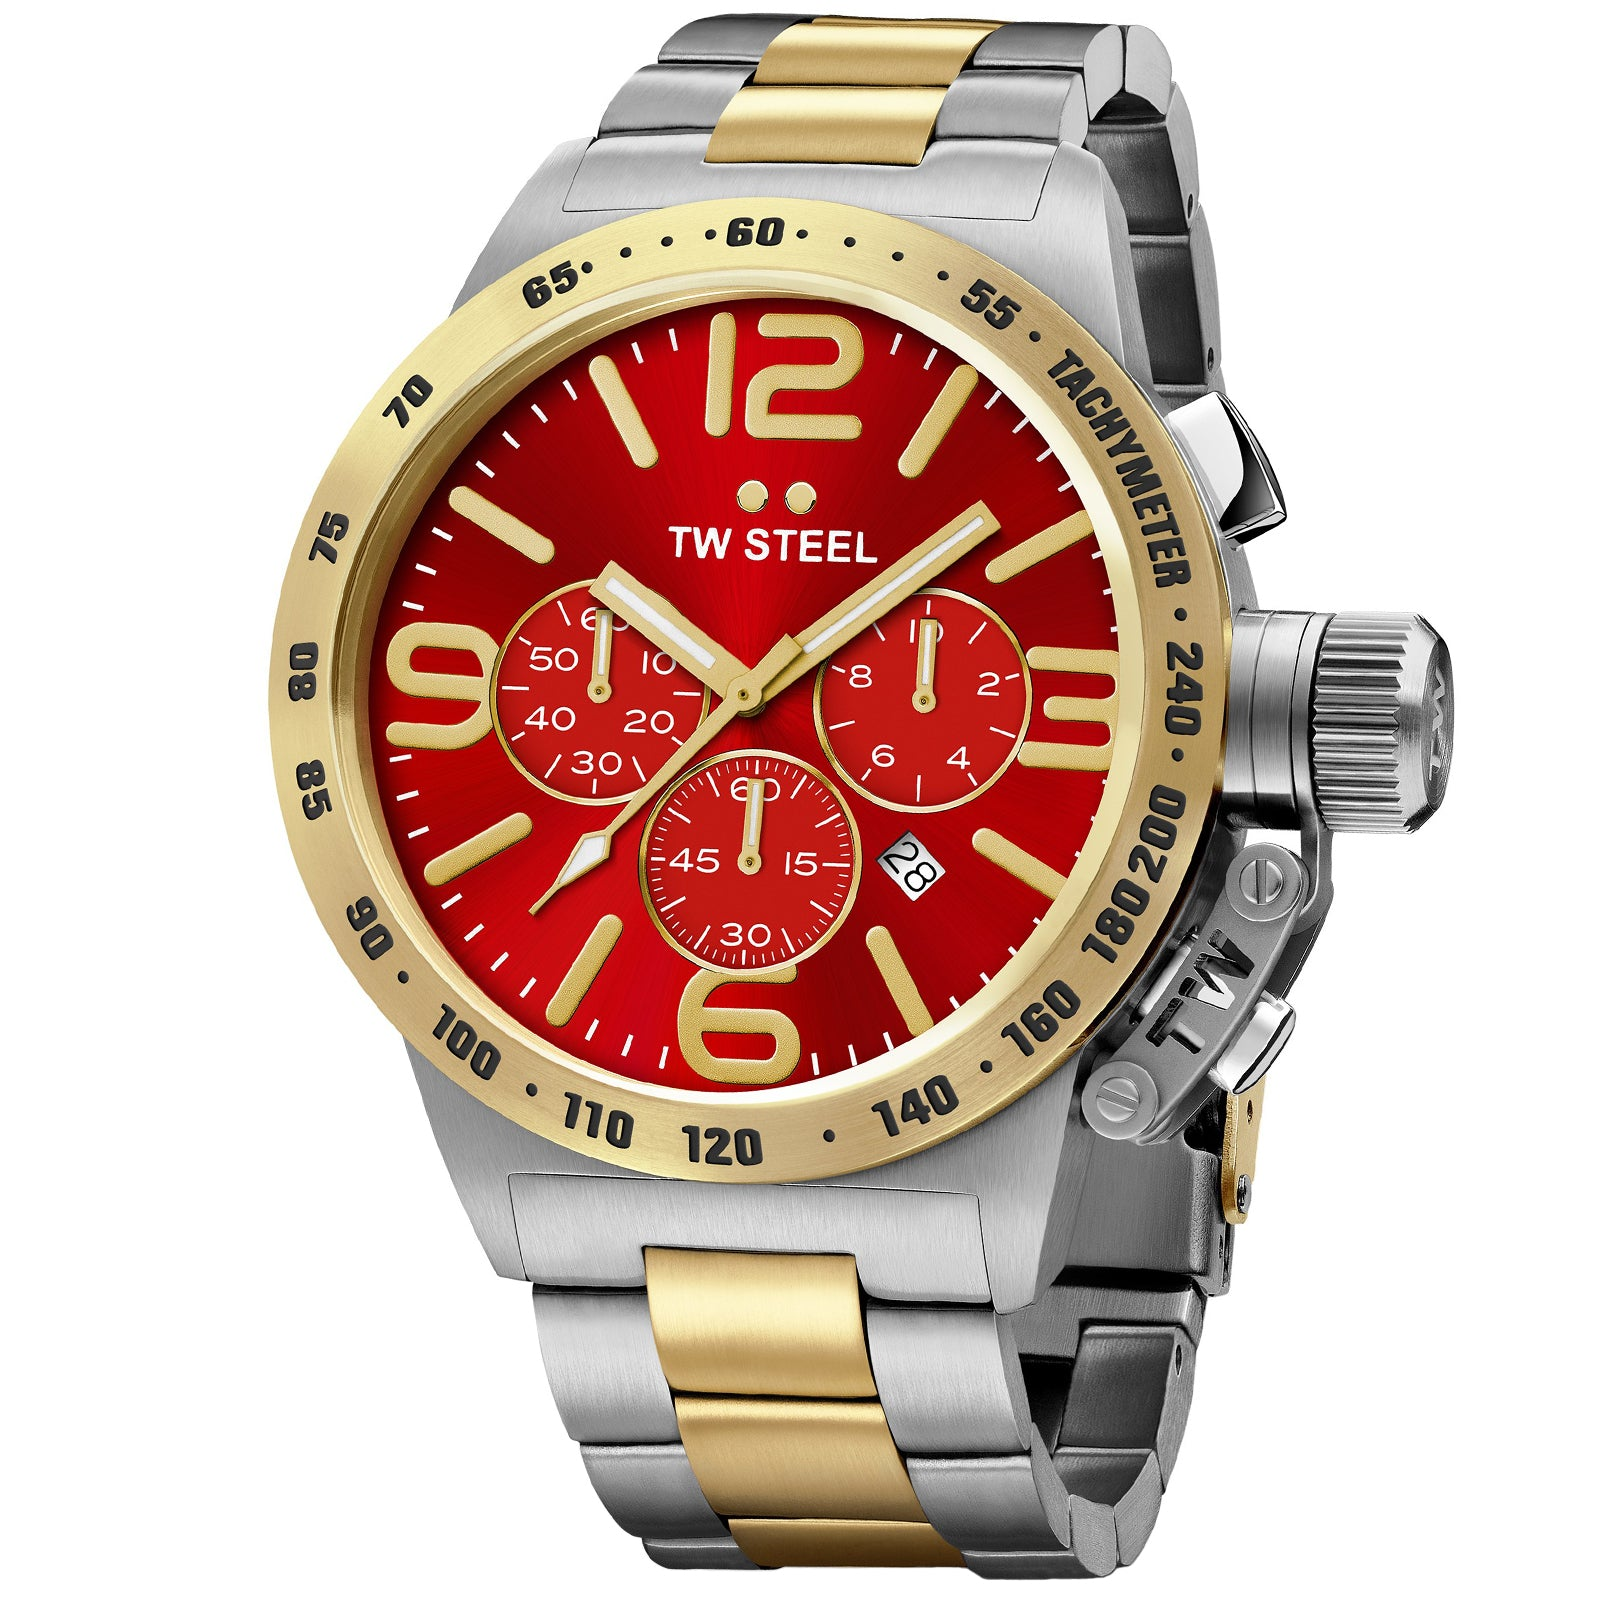 Canteen Bracelet Yellow Gold Plated Red Dial Chronograph Quartz Men's Watch CB73-Luxury Watches | Mens And Ladies Luxury Watches | Upscale Time